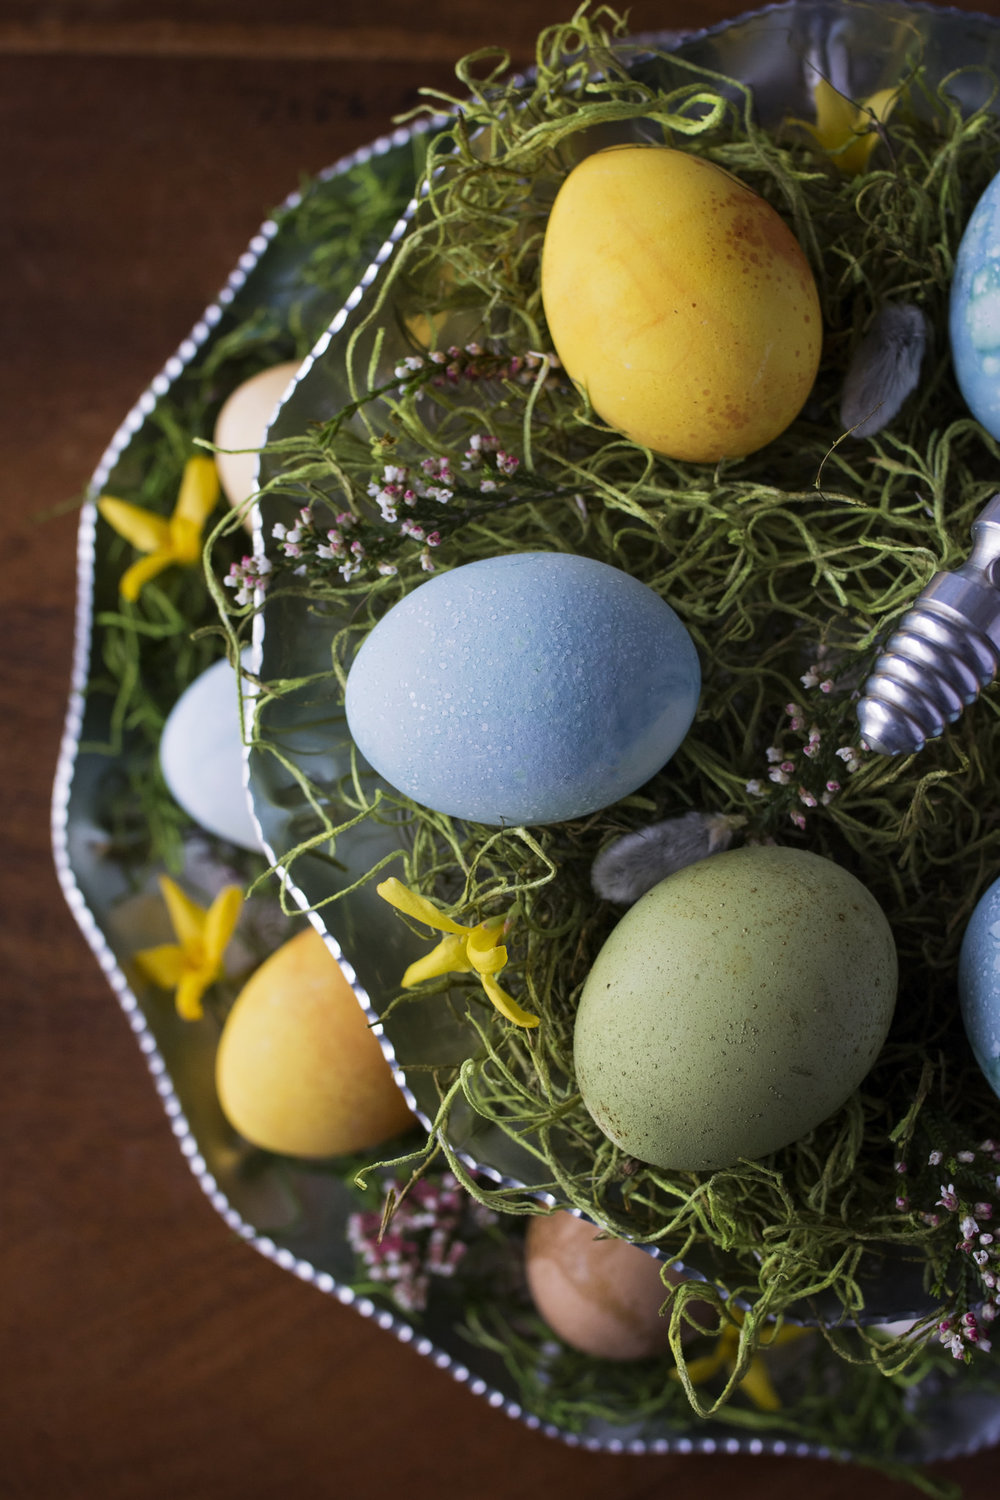 Kristine_eggs_Easter_flowers_spiritedtable_photo04.jpg